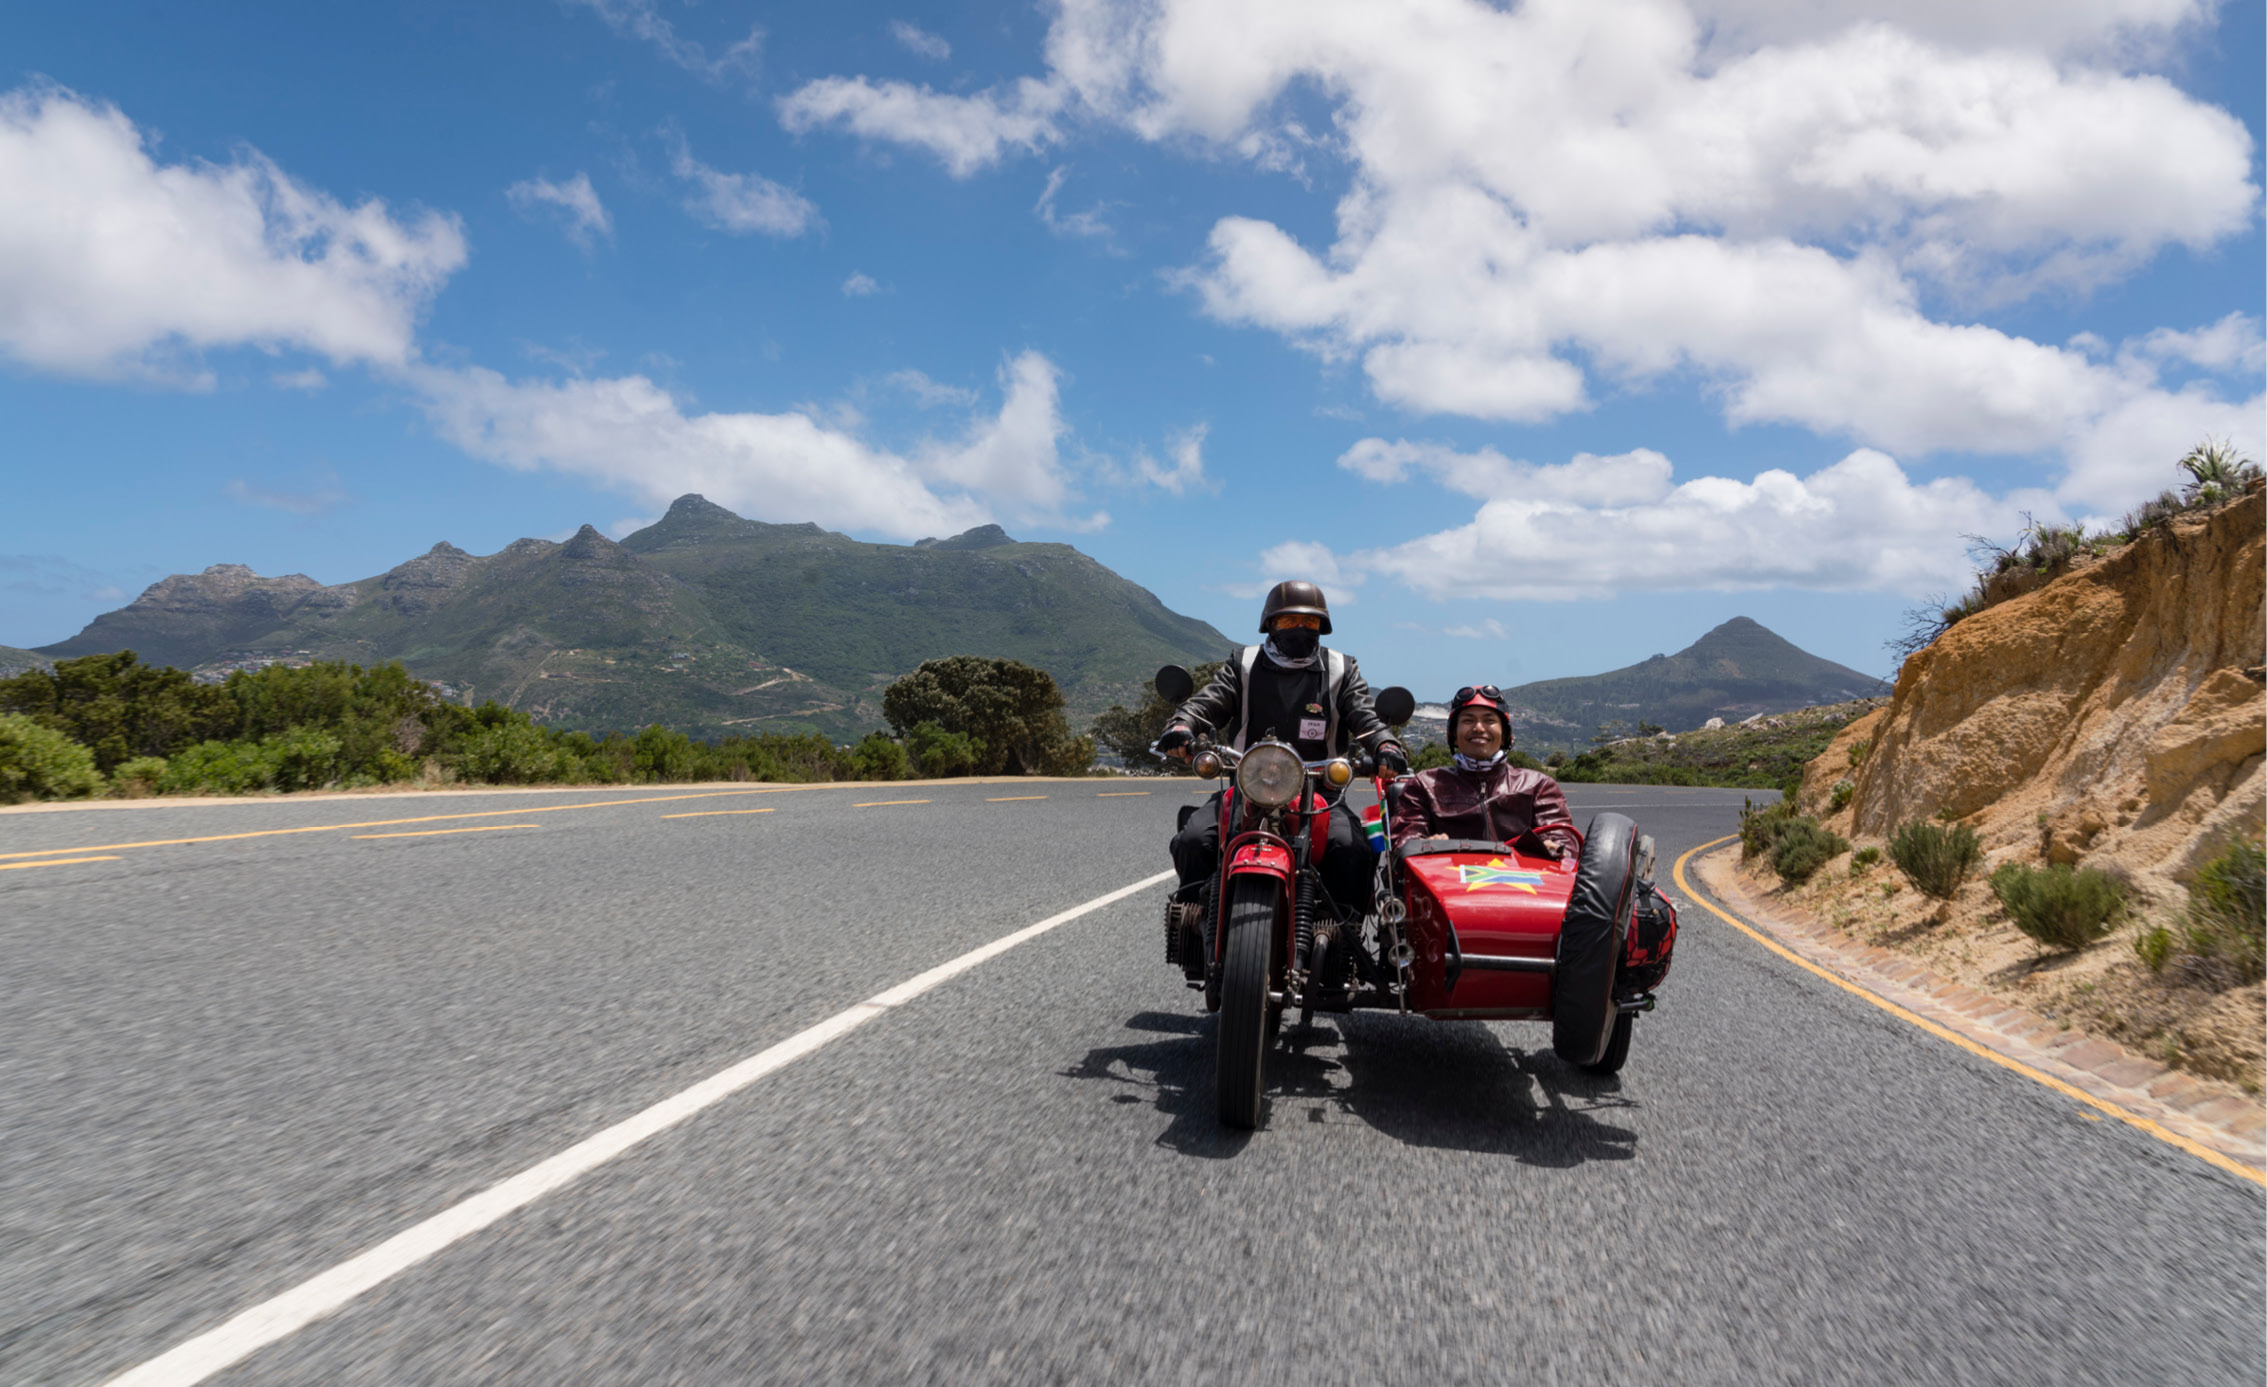 cape town sidecar scooter mountain road